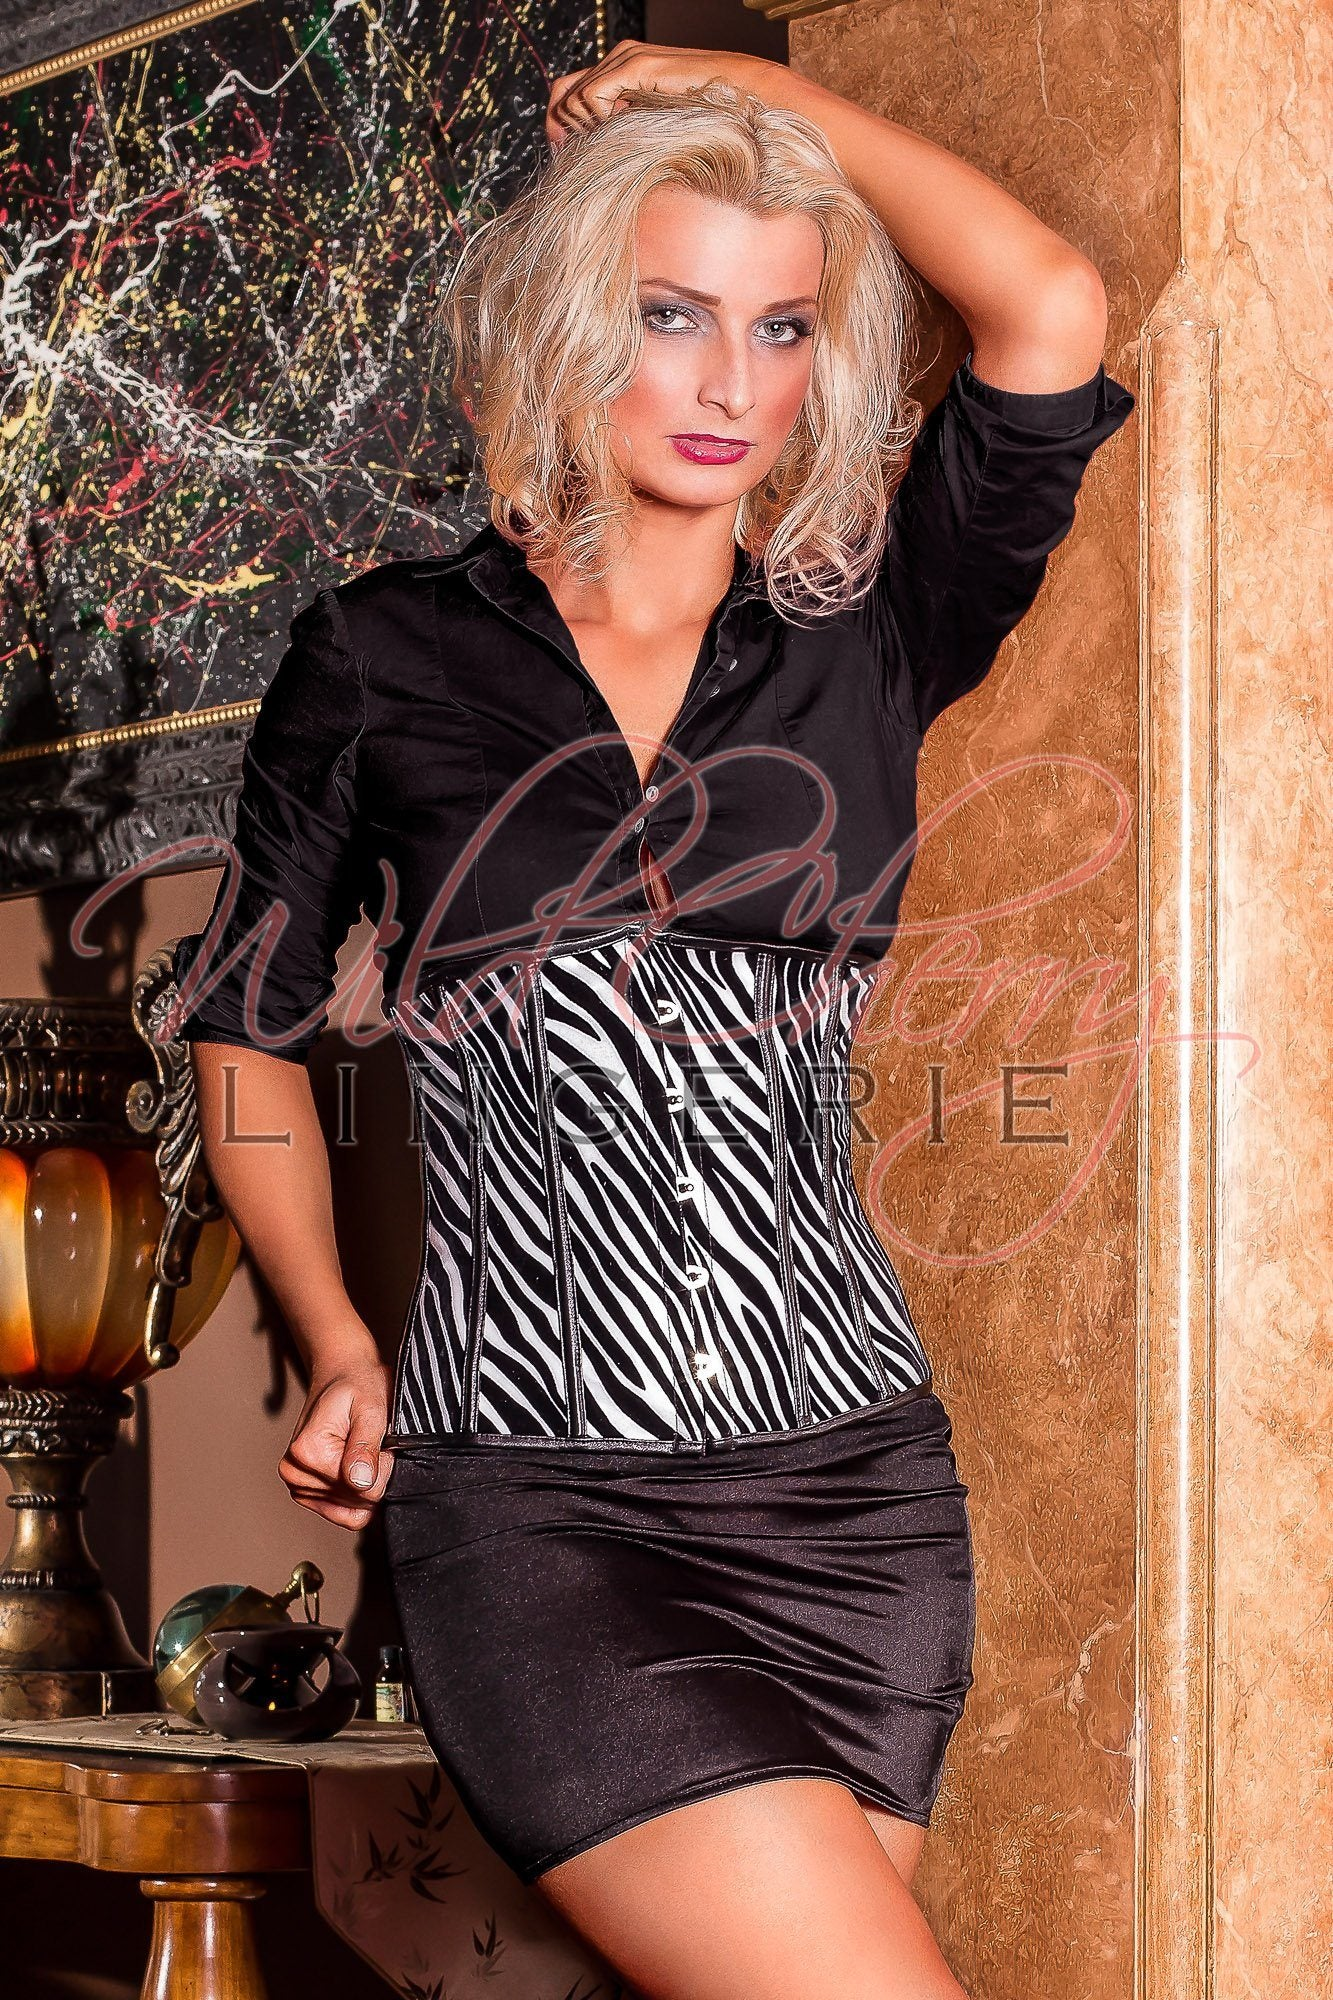 Zebra Striped Underbust Corset